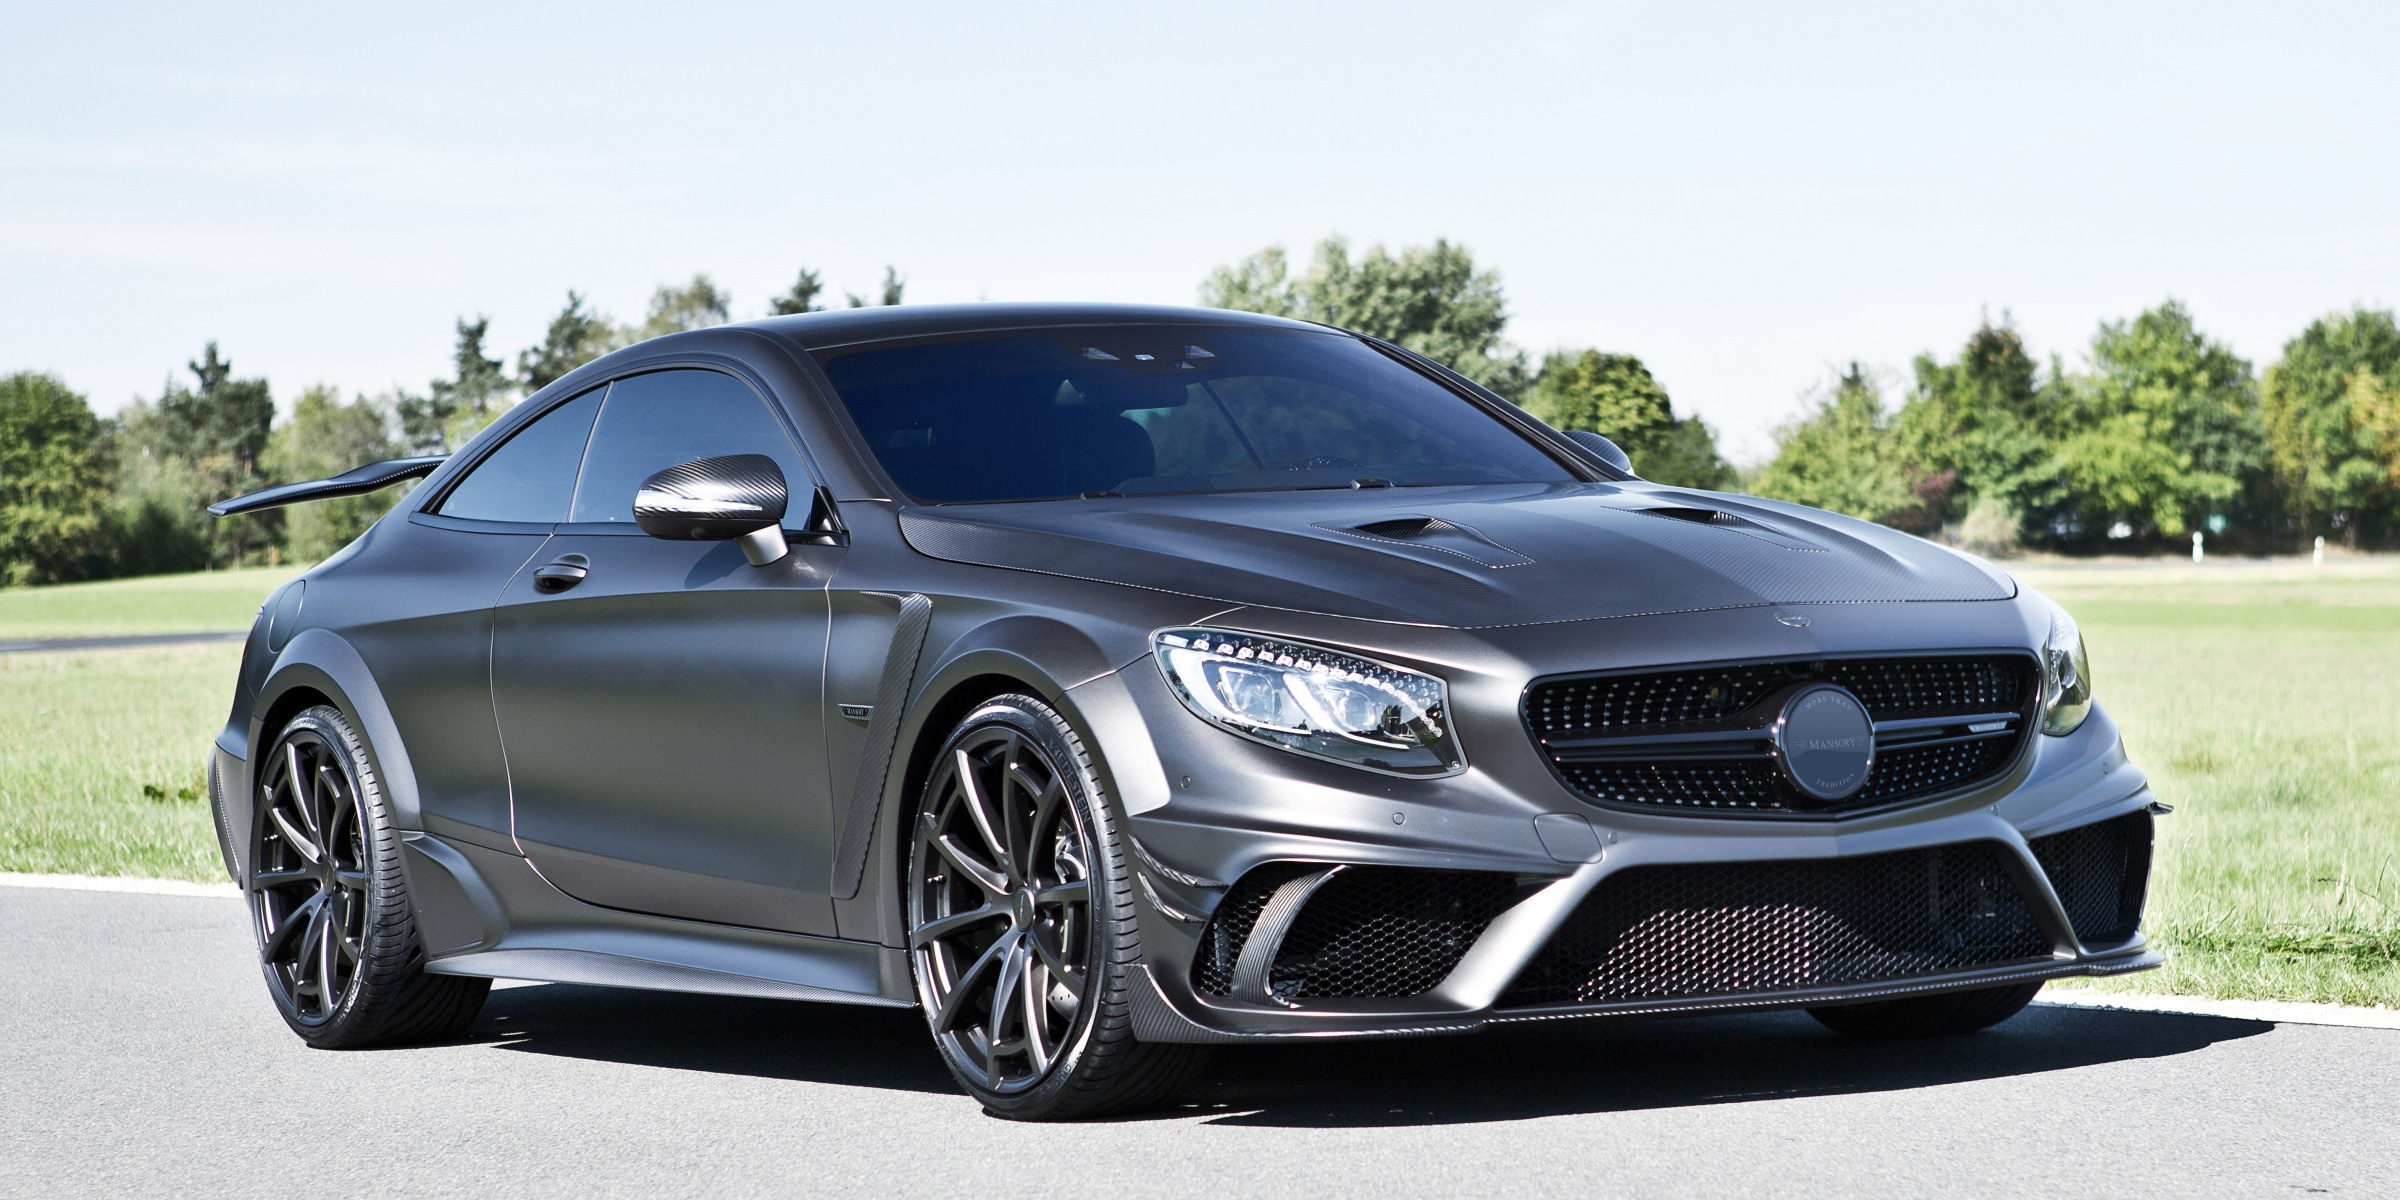 mansory_mercedes-benz_s-coupe_wide_black_edition_01.jpg